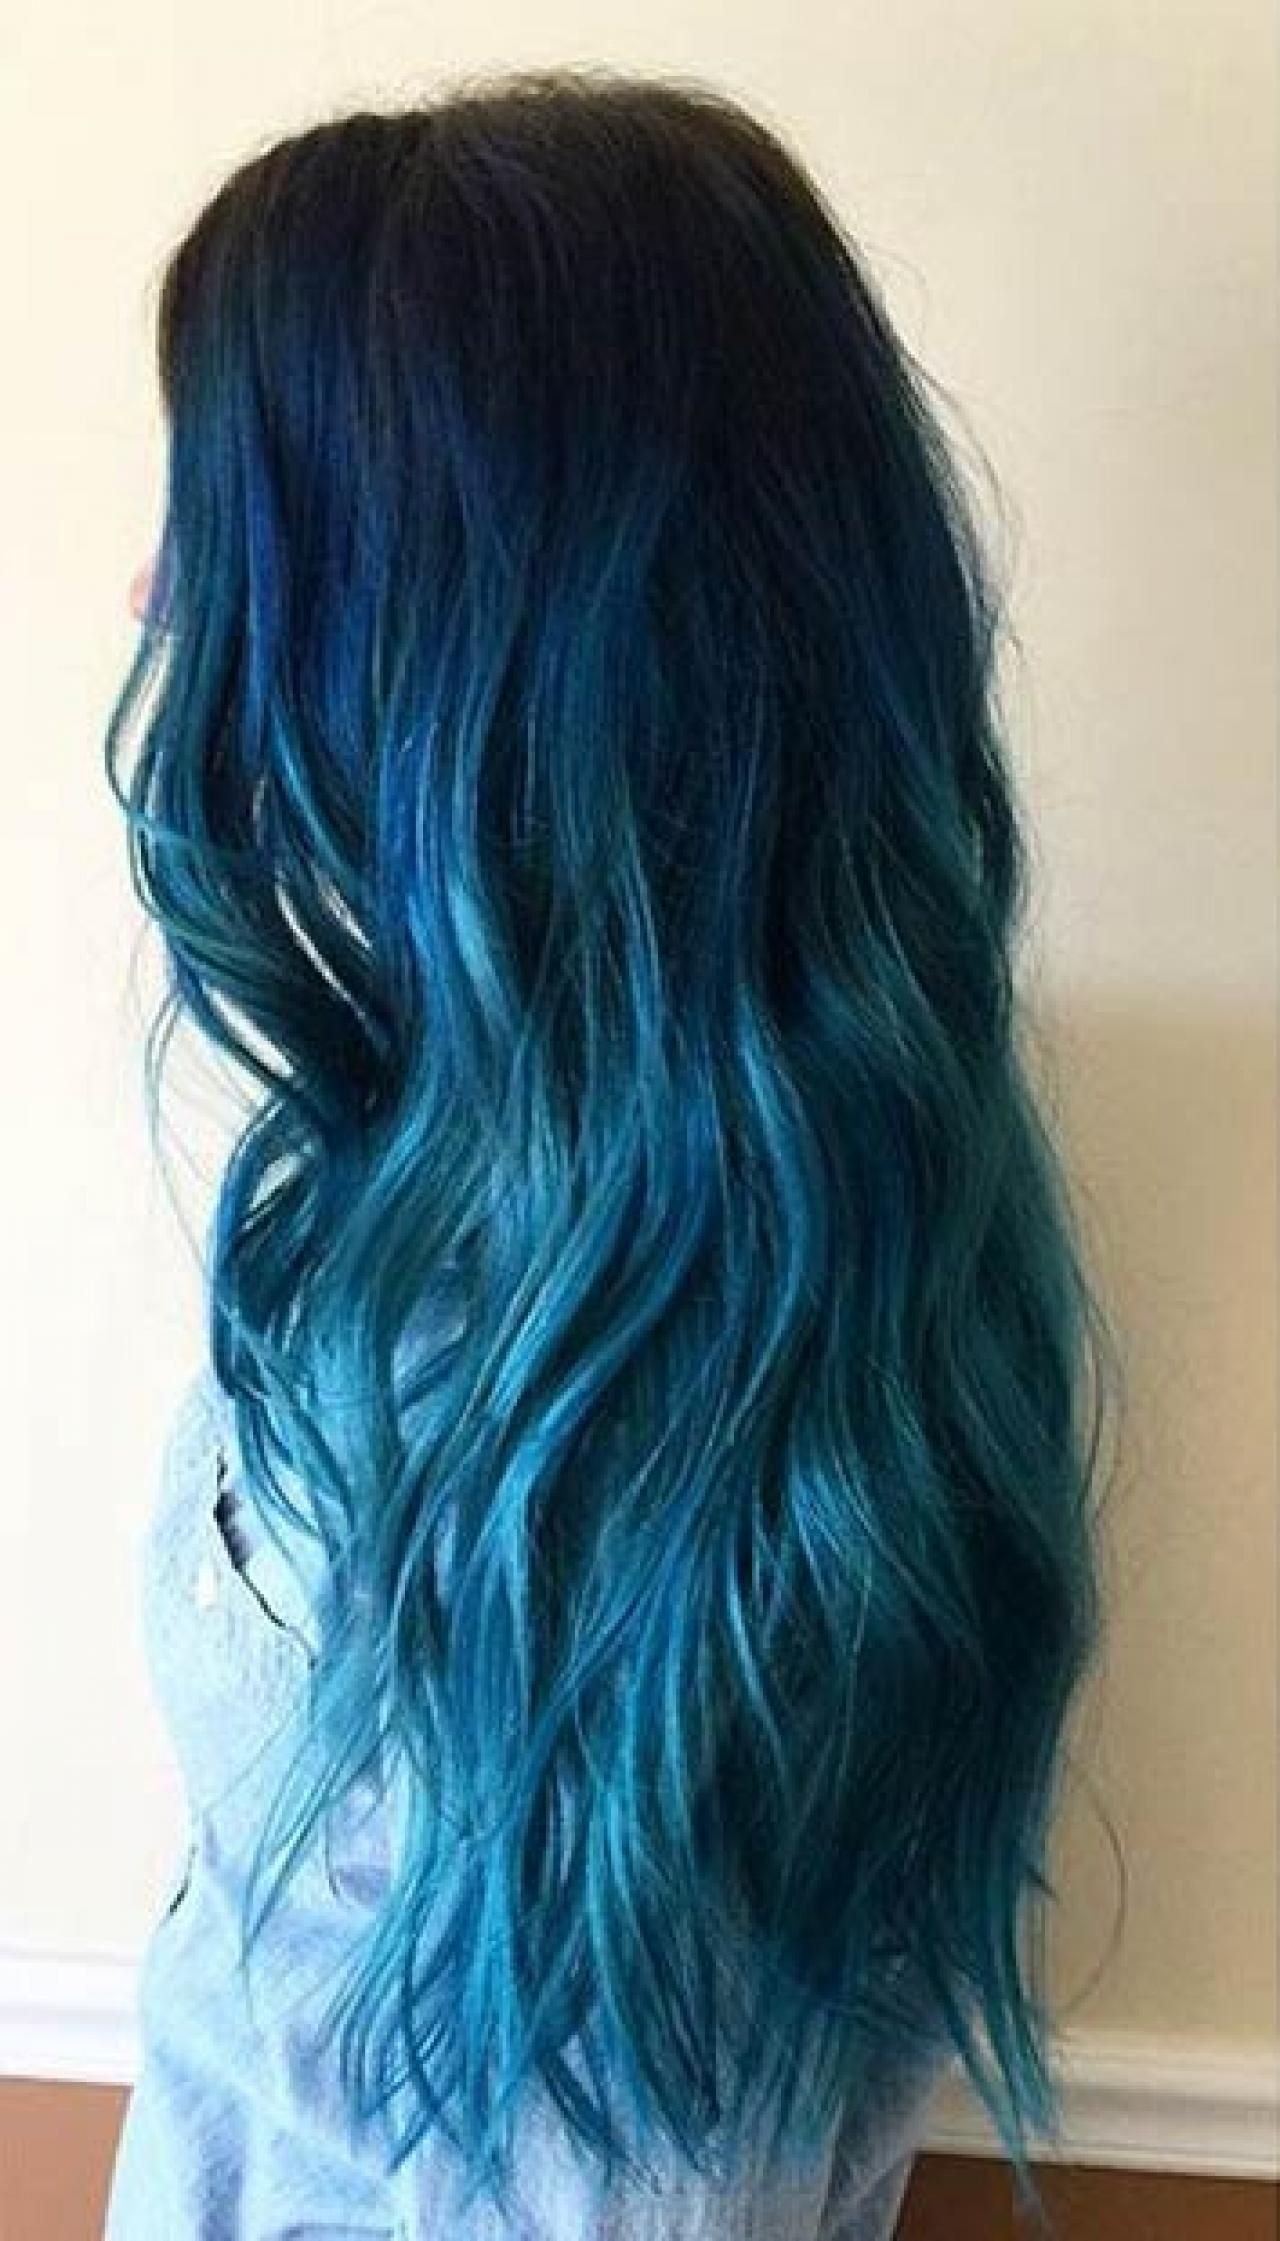 Blue ombre hair hair pinterest blue ombre hair blue ombre and